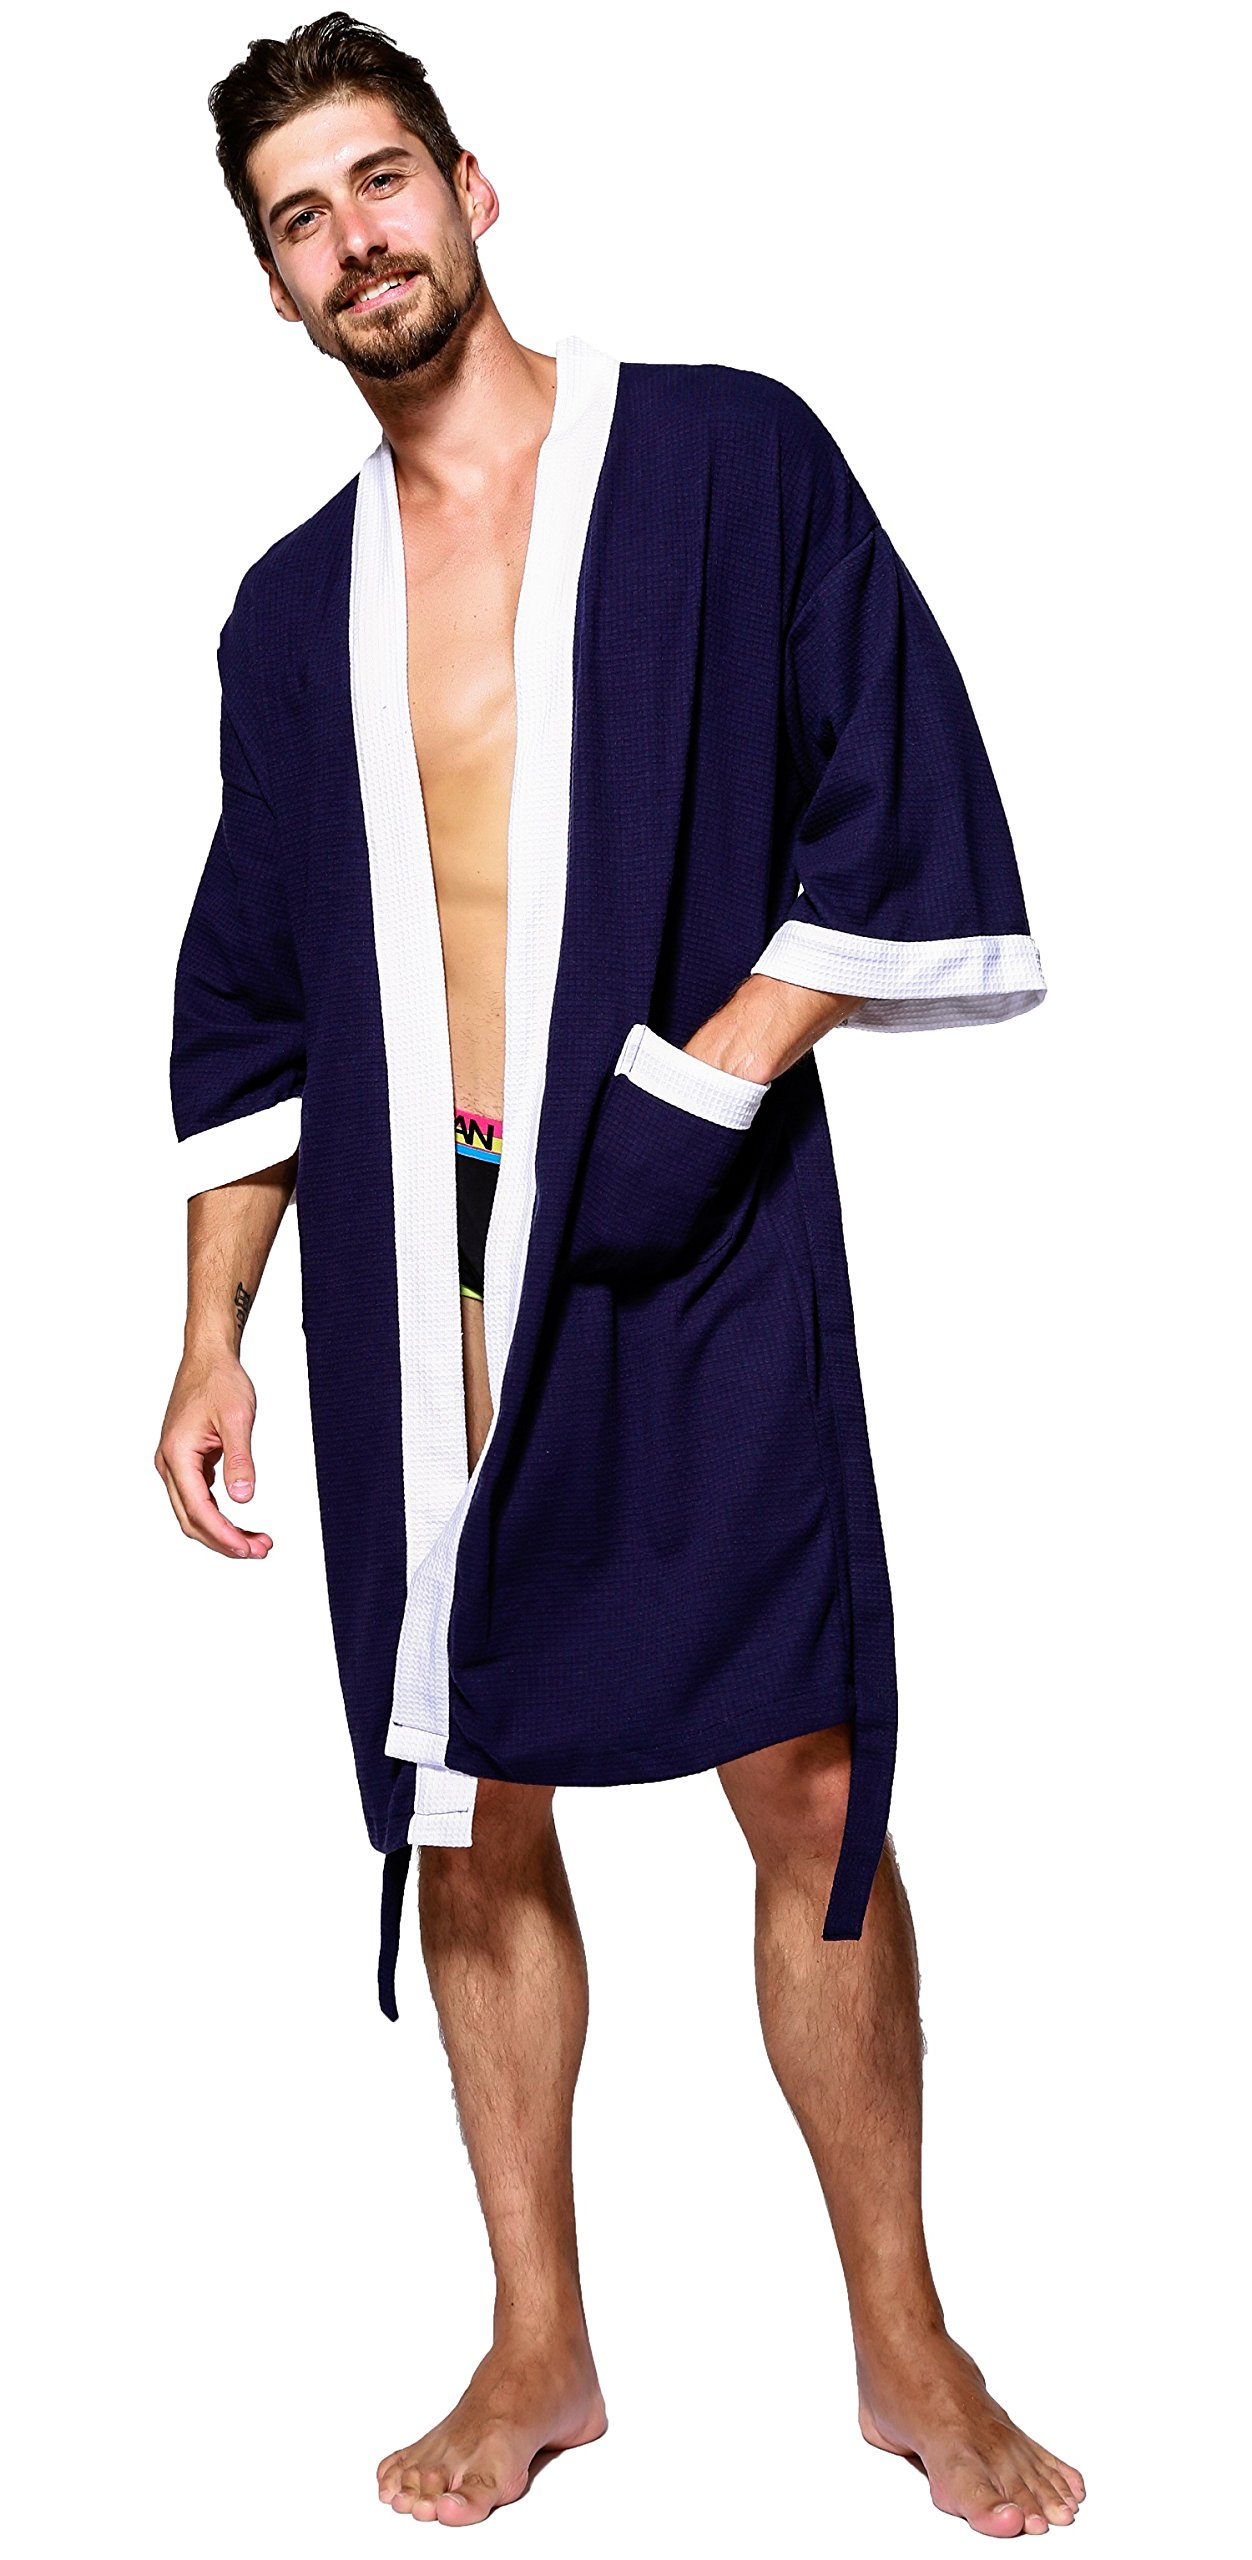 AIKEN Mens Robe Lightweight Summer Cotton Short Kimono Bathrobe Spa Waffle Bath Rob Knee Length Sleepwear Soft Robes with Pockets for Men Size XL